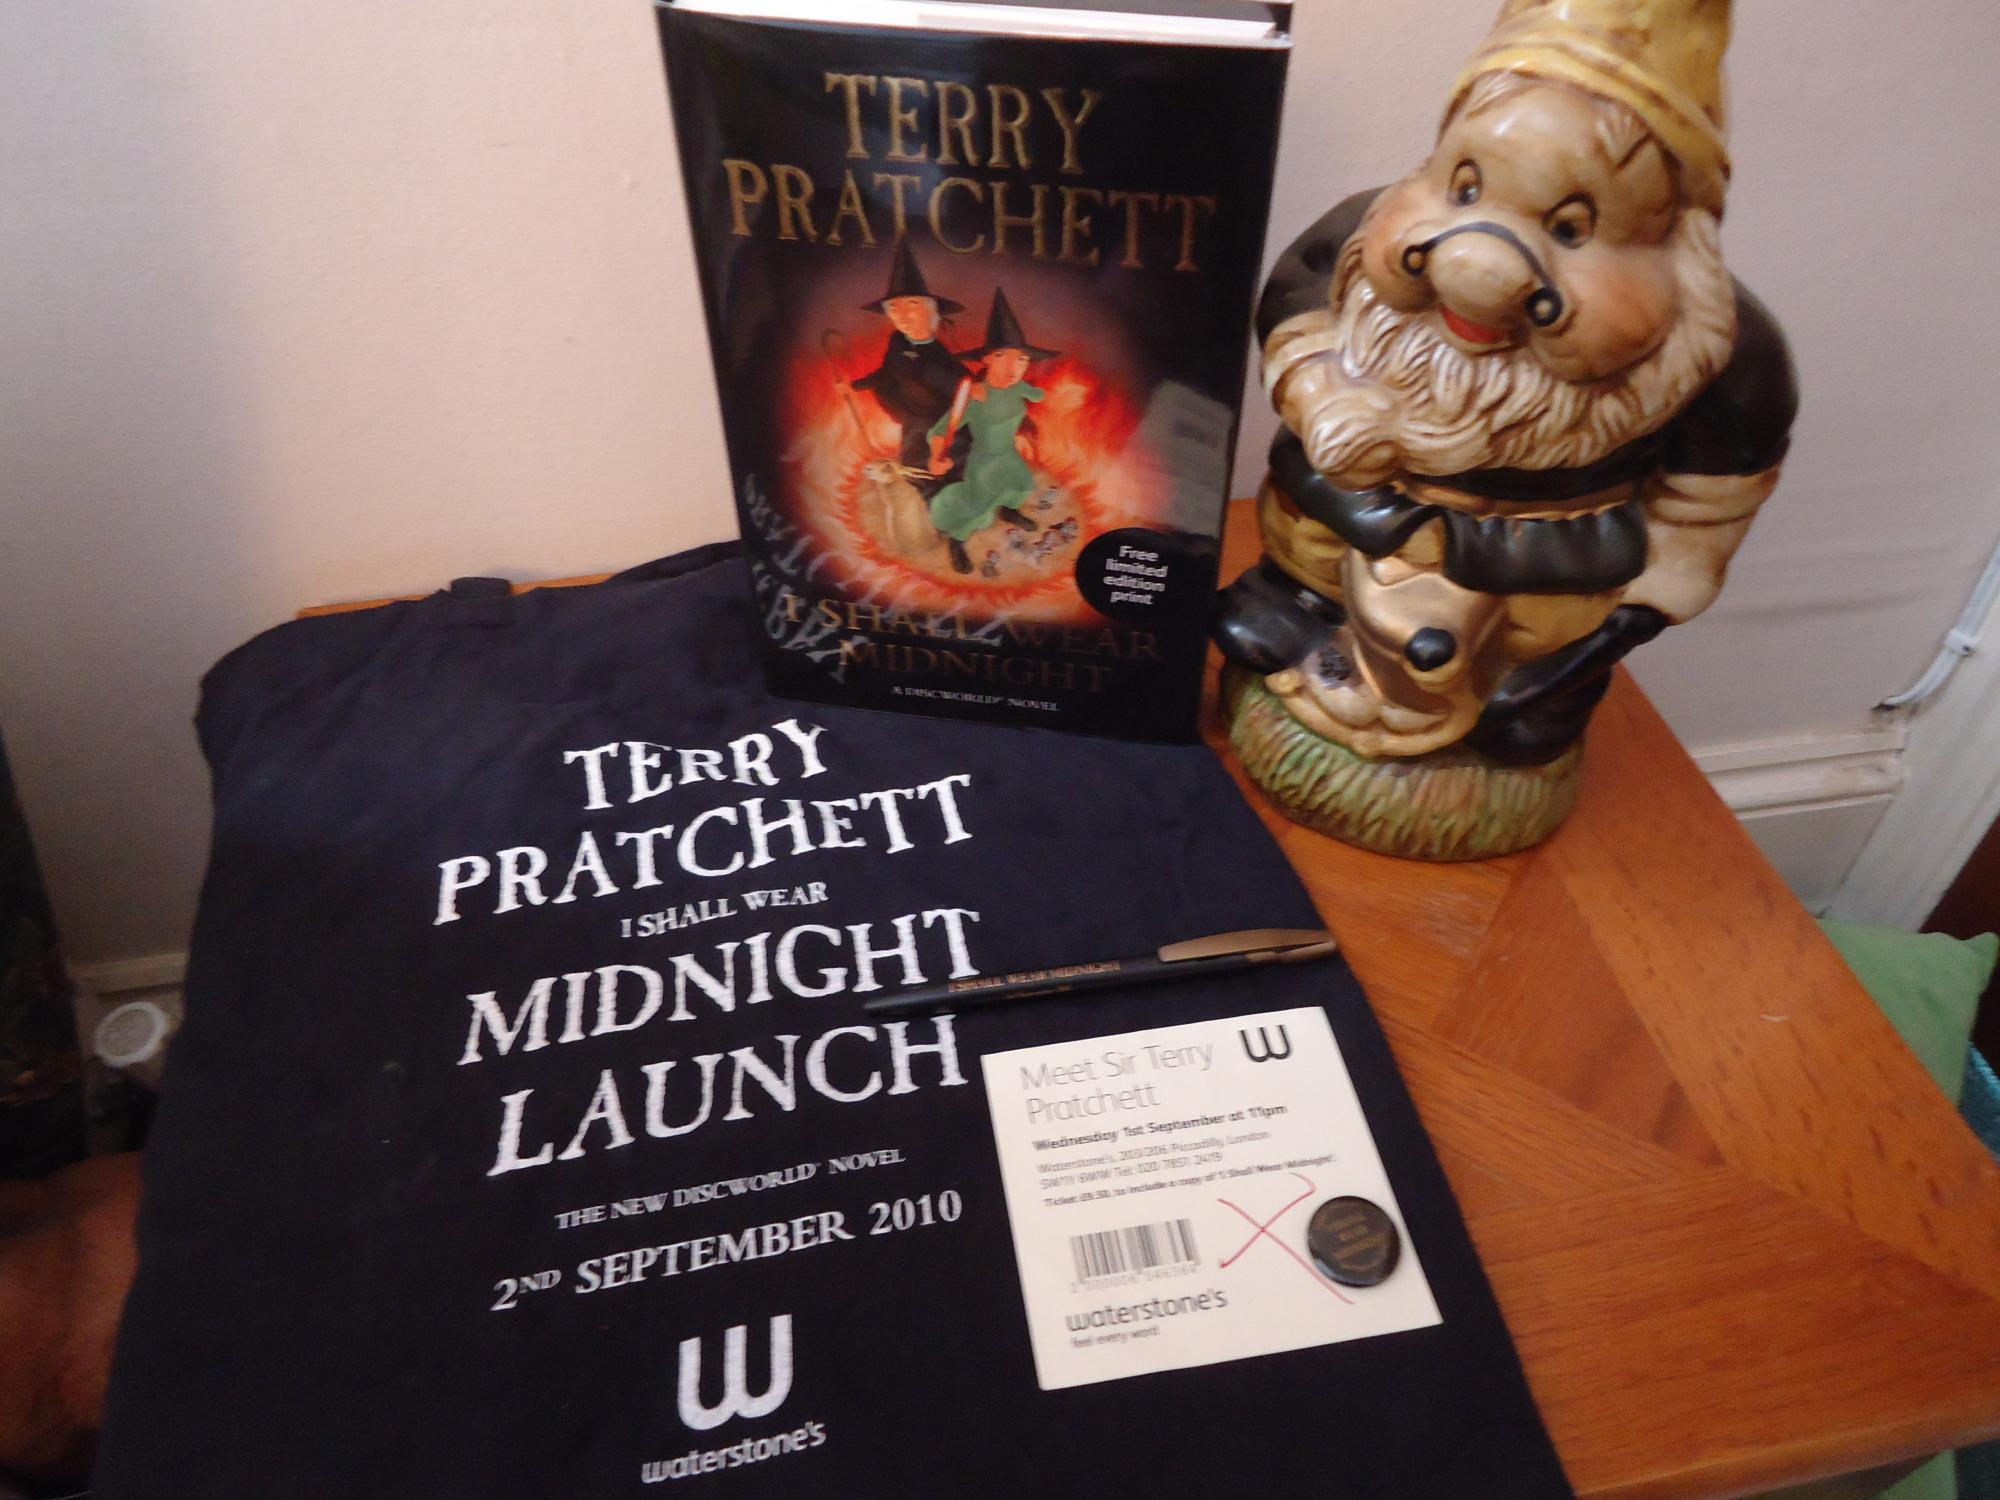 I SHALL WEAR MIDNIGHT+++A SUPERB SIGNED AND STAMPED UK HARDBACK+++PLUSLIMITED EDITION PRINT+ BAG+PEN+BADGE AND EVENT TICKET+++FIRST EDITION FIRST PRINT+++ - TERRY PRATCHETT (SIGNED AND STAMPED PLUS EXTRAS)